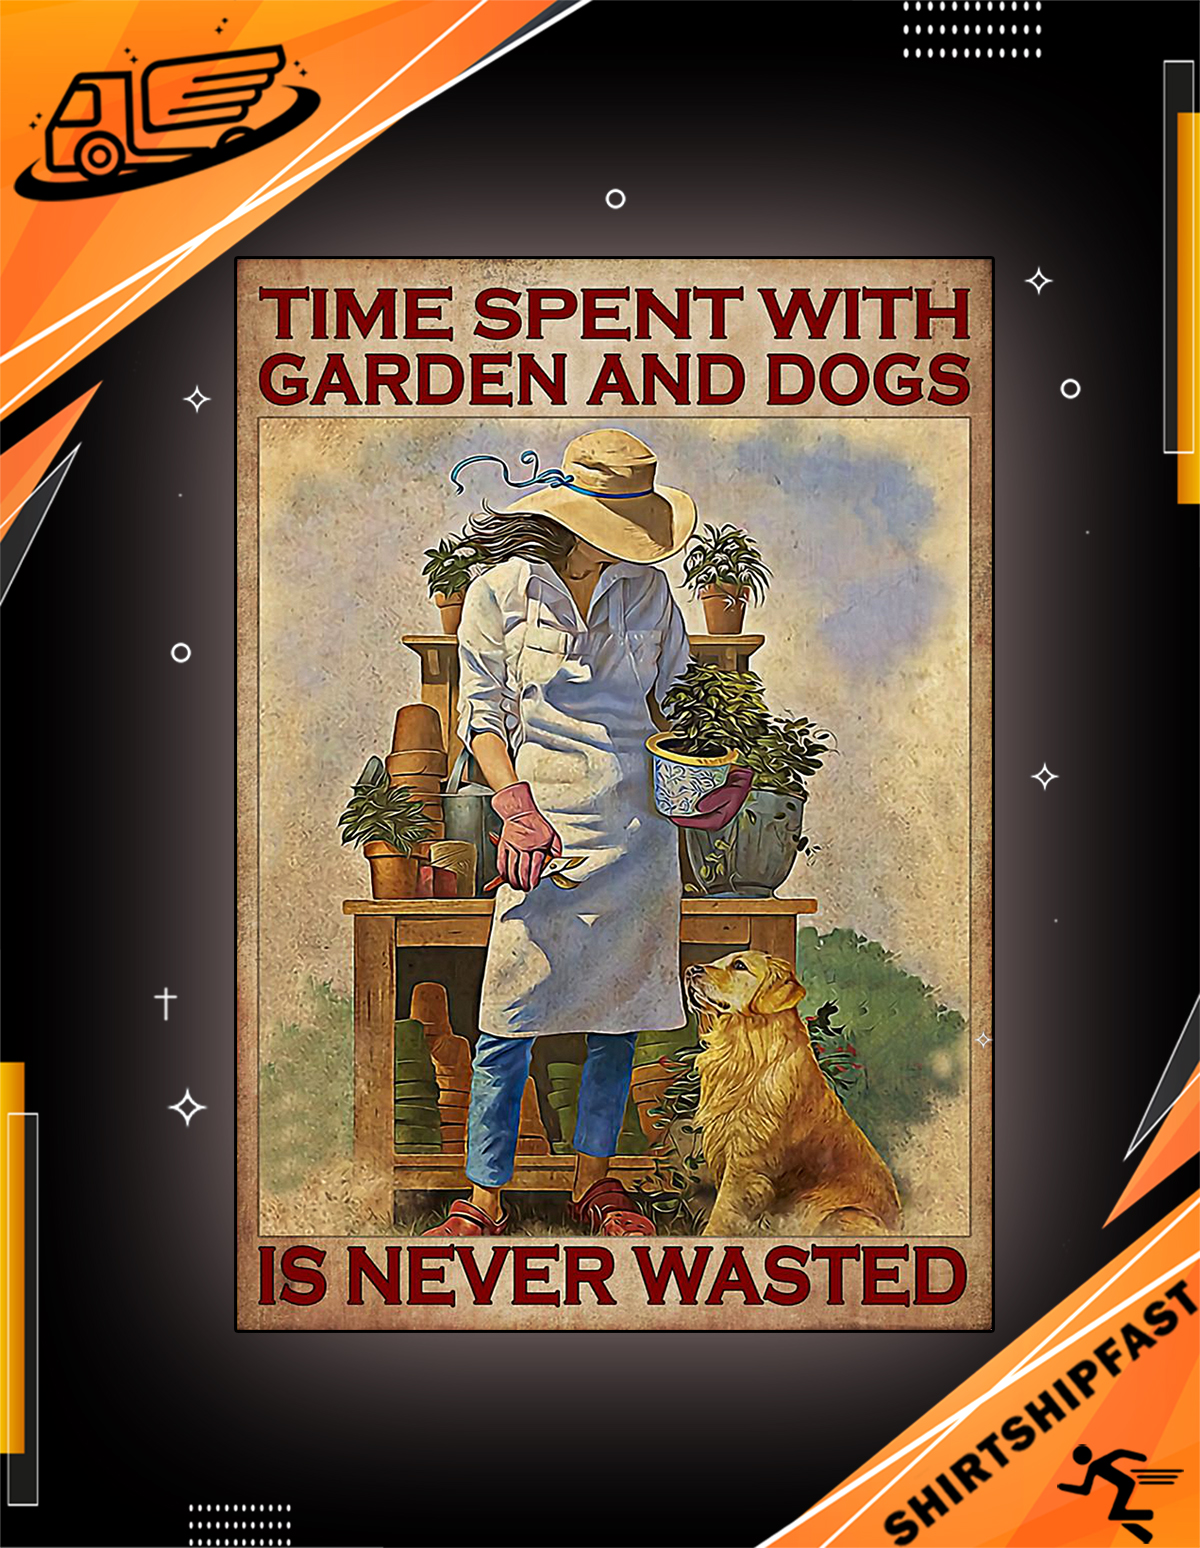 Time spent with garden and dogs is never wasted poster